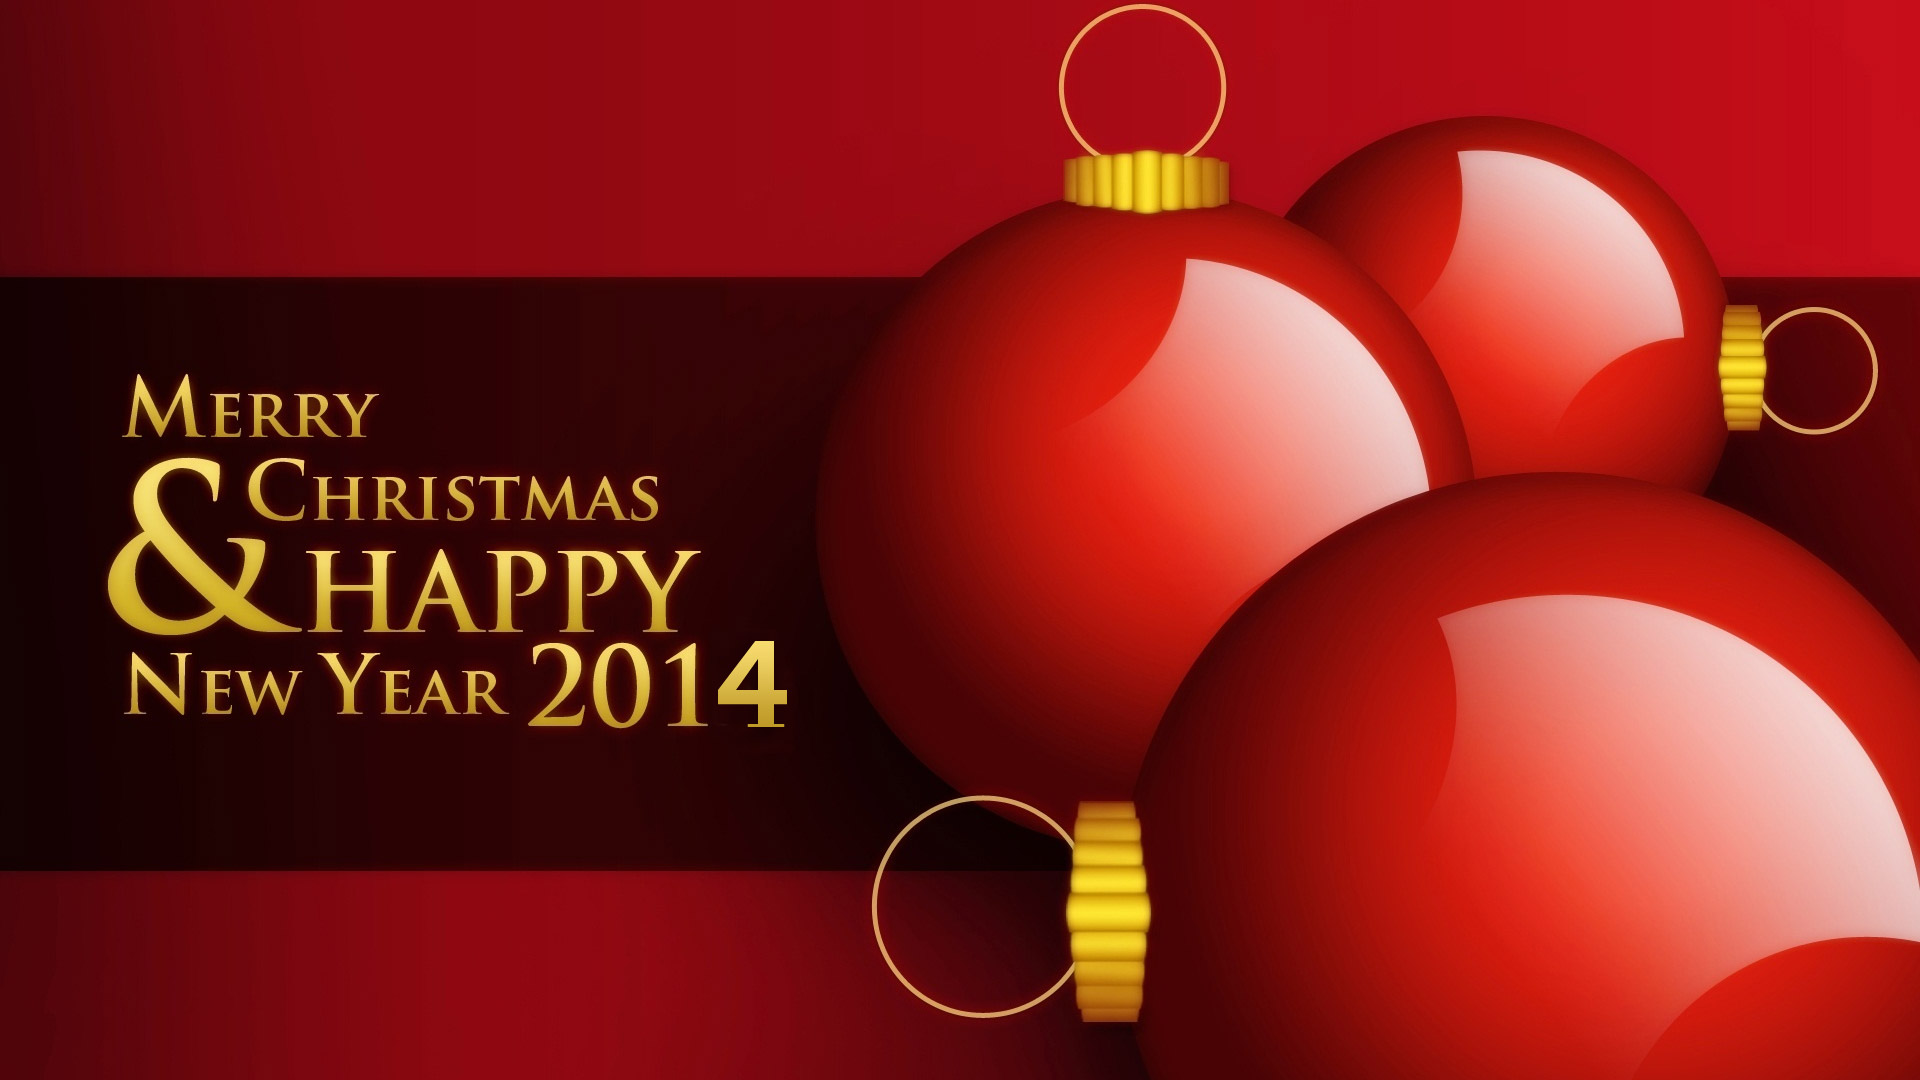 Happy new year 2014 vijays best new year images hem hd wallpapers arena voltagebd Image collections